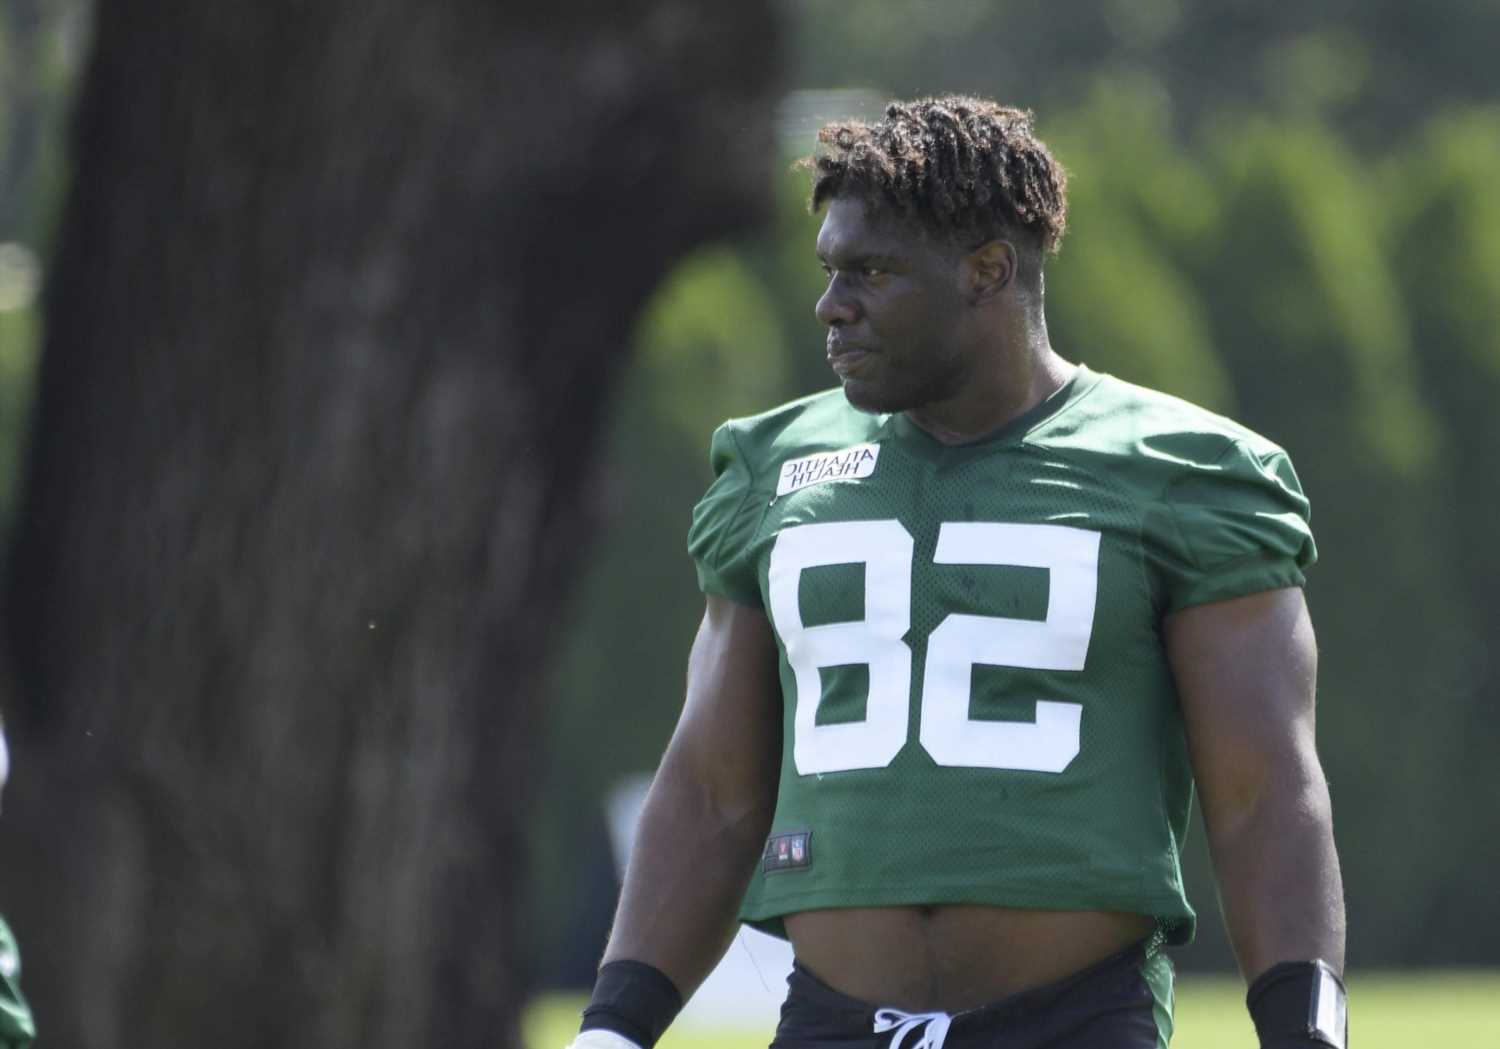 Carl Lawson dominates Jets practice with multiple 'sacks'